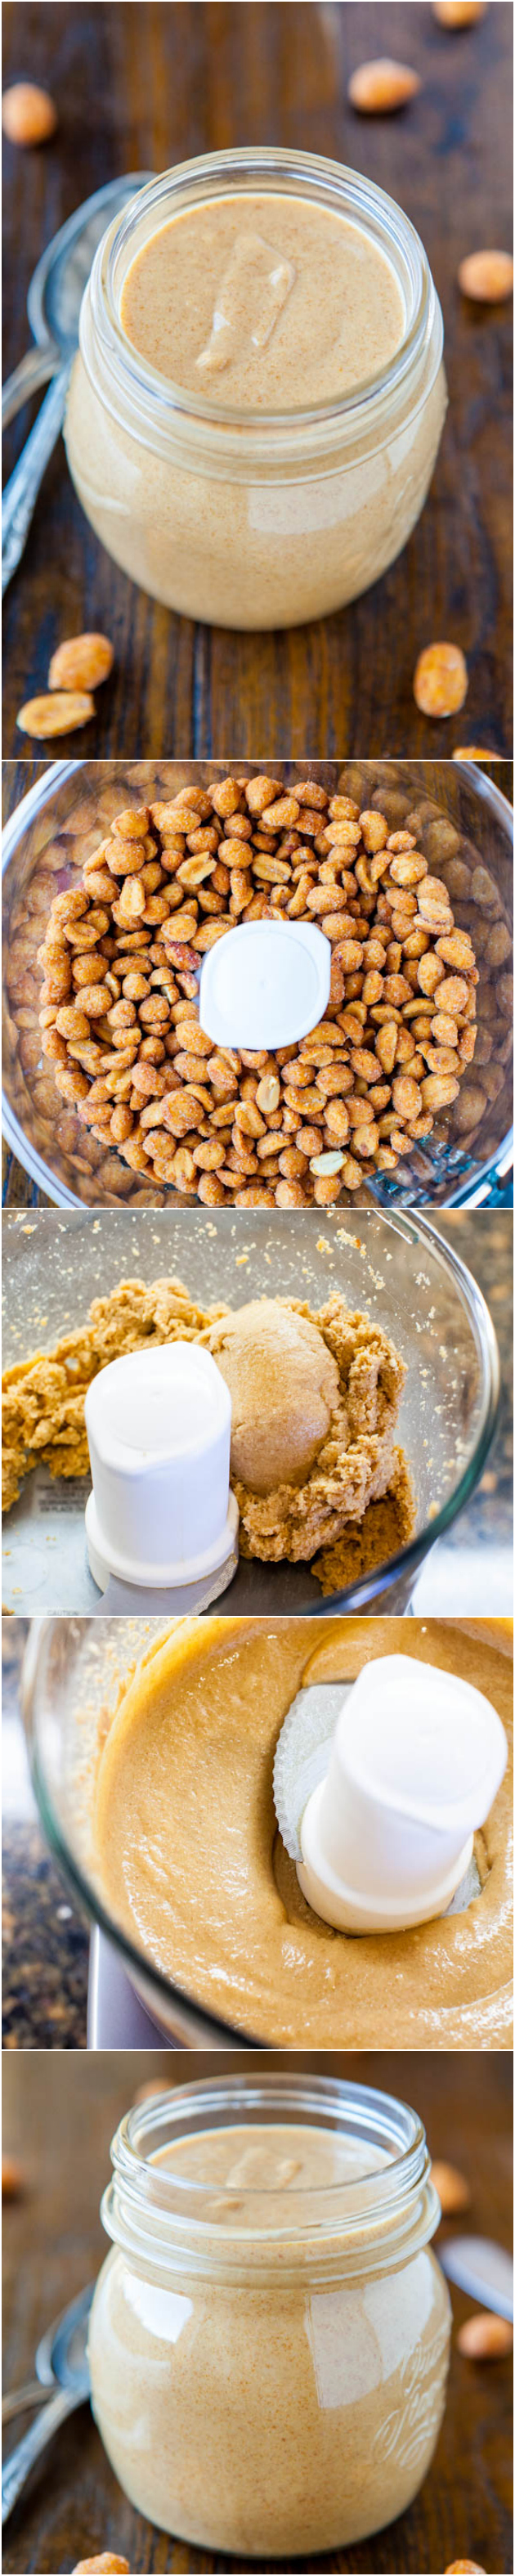 Make your own peanut butter